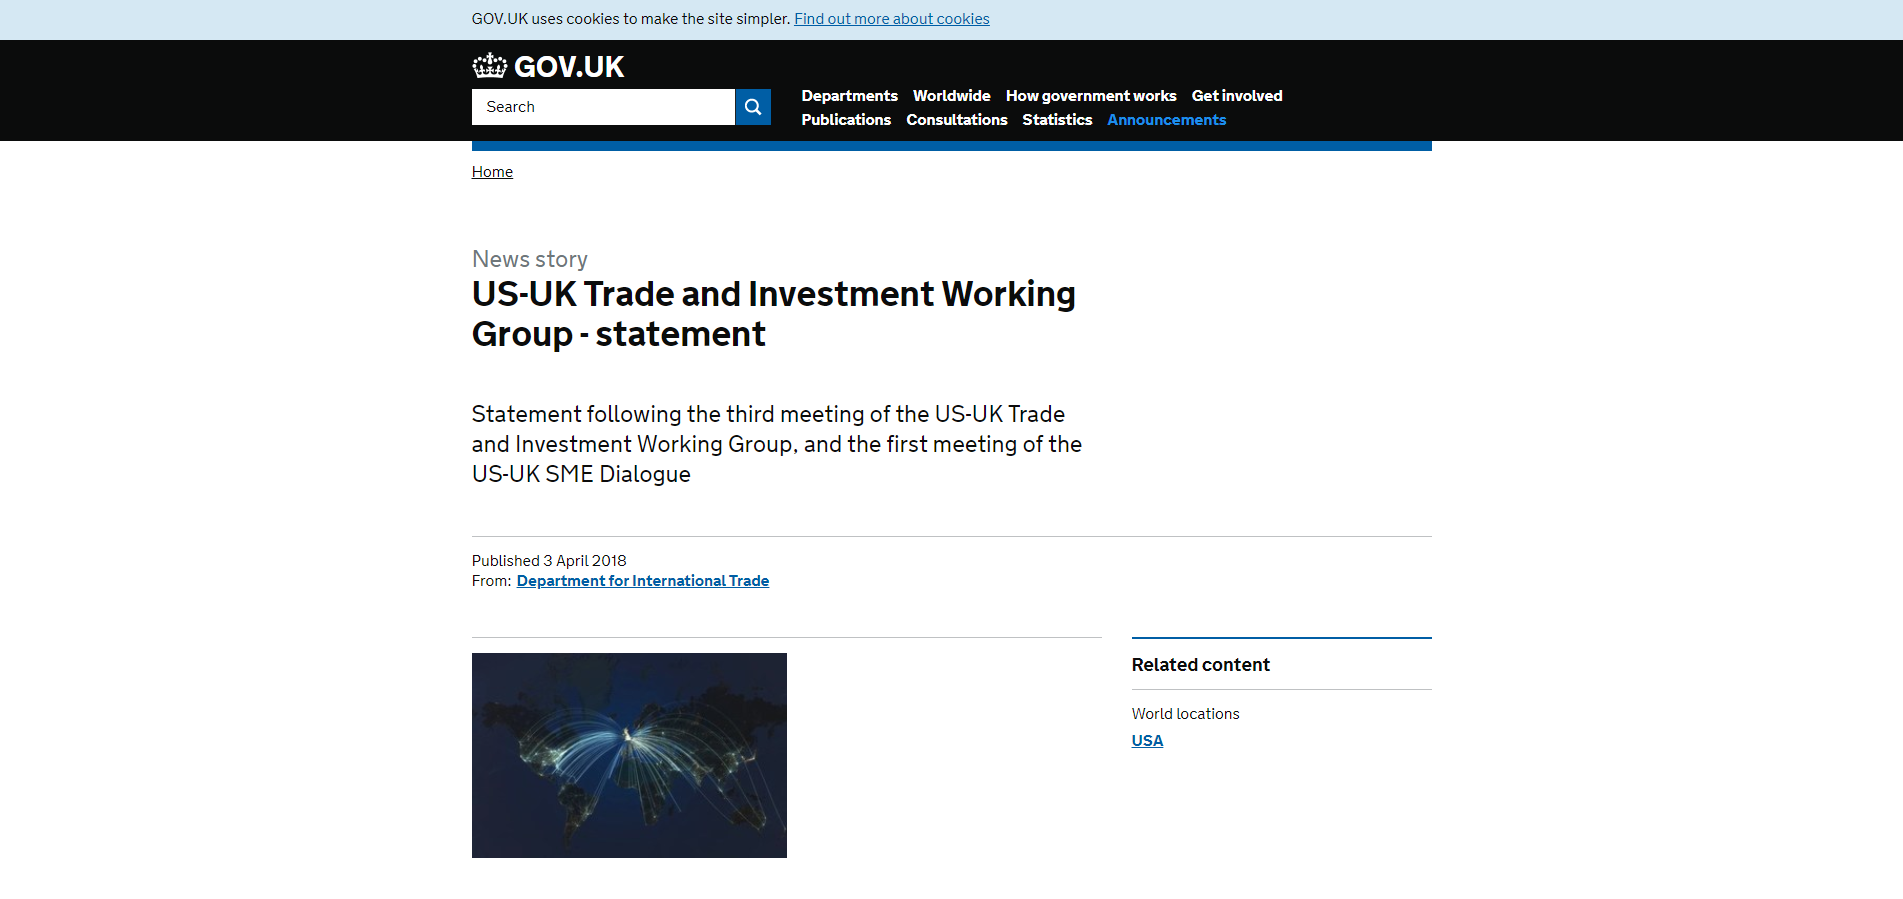 US-UK Trade and Investment Working Group - statement